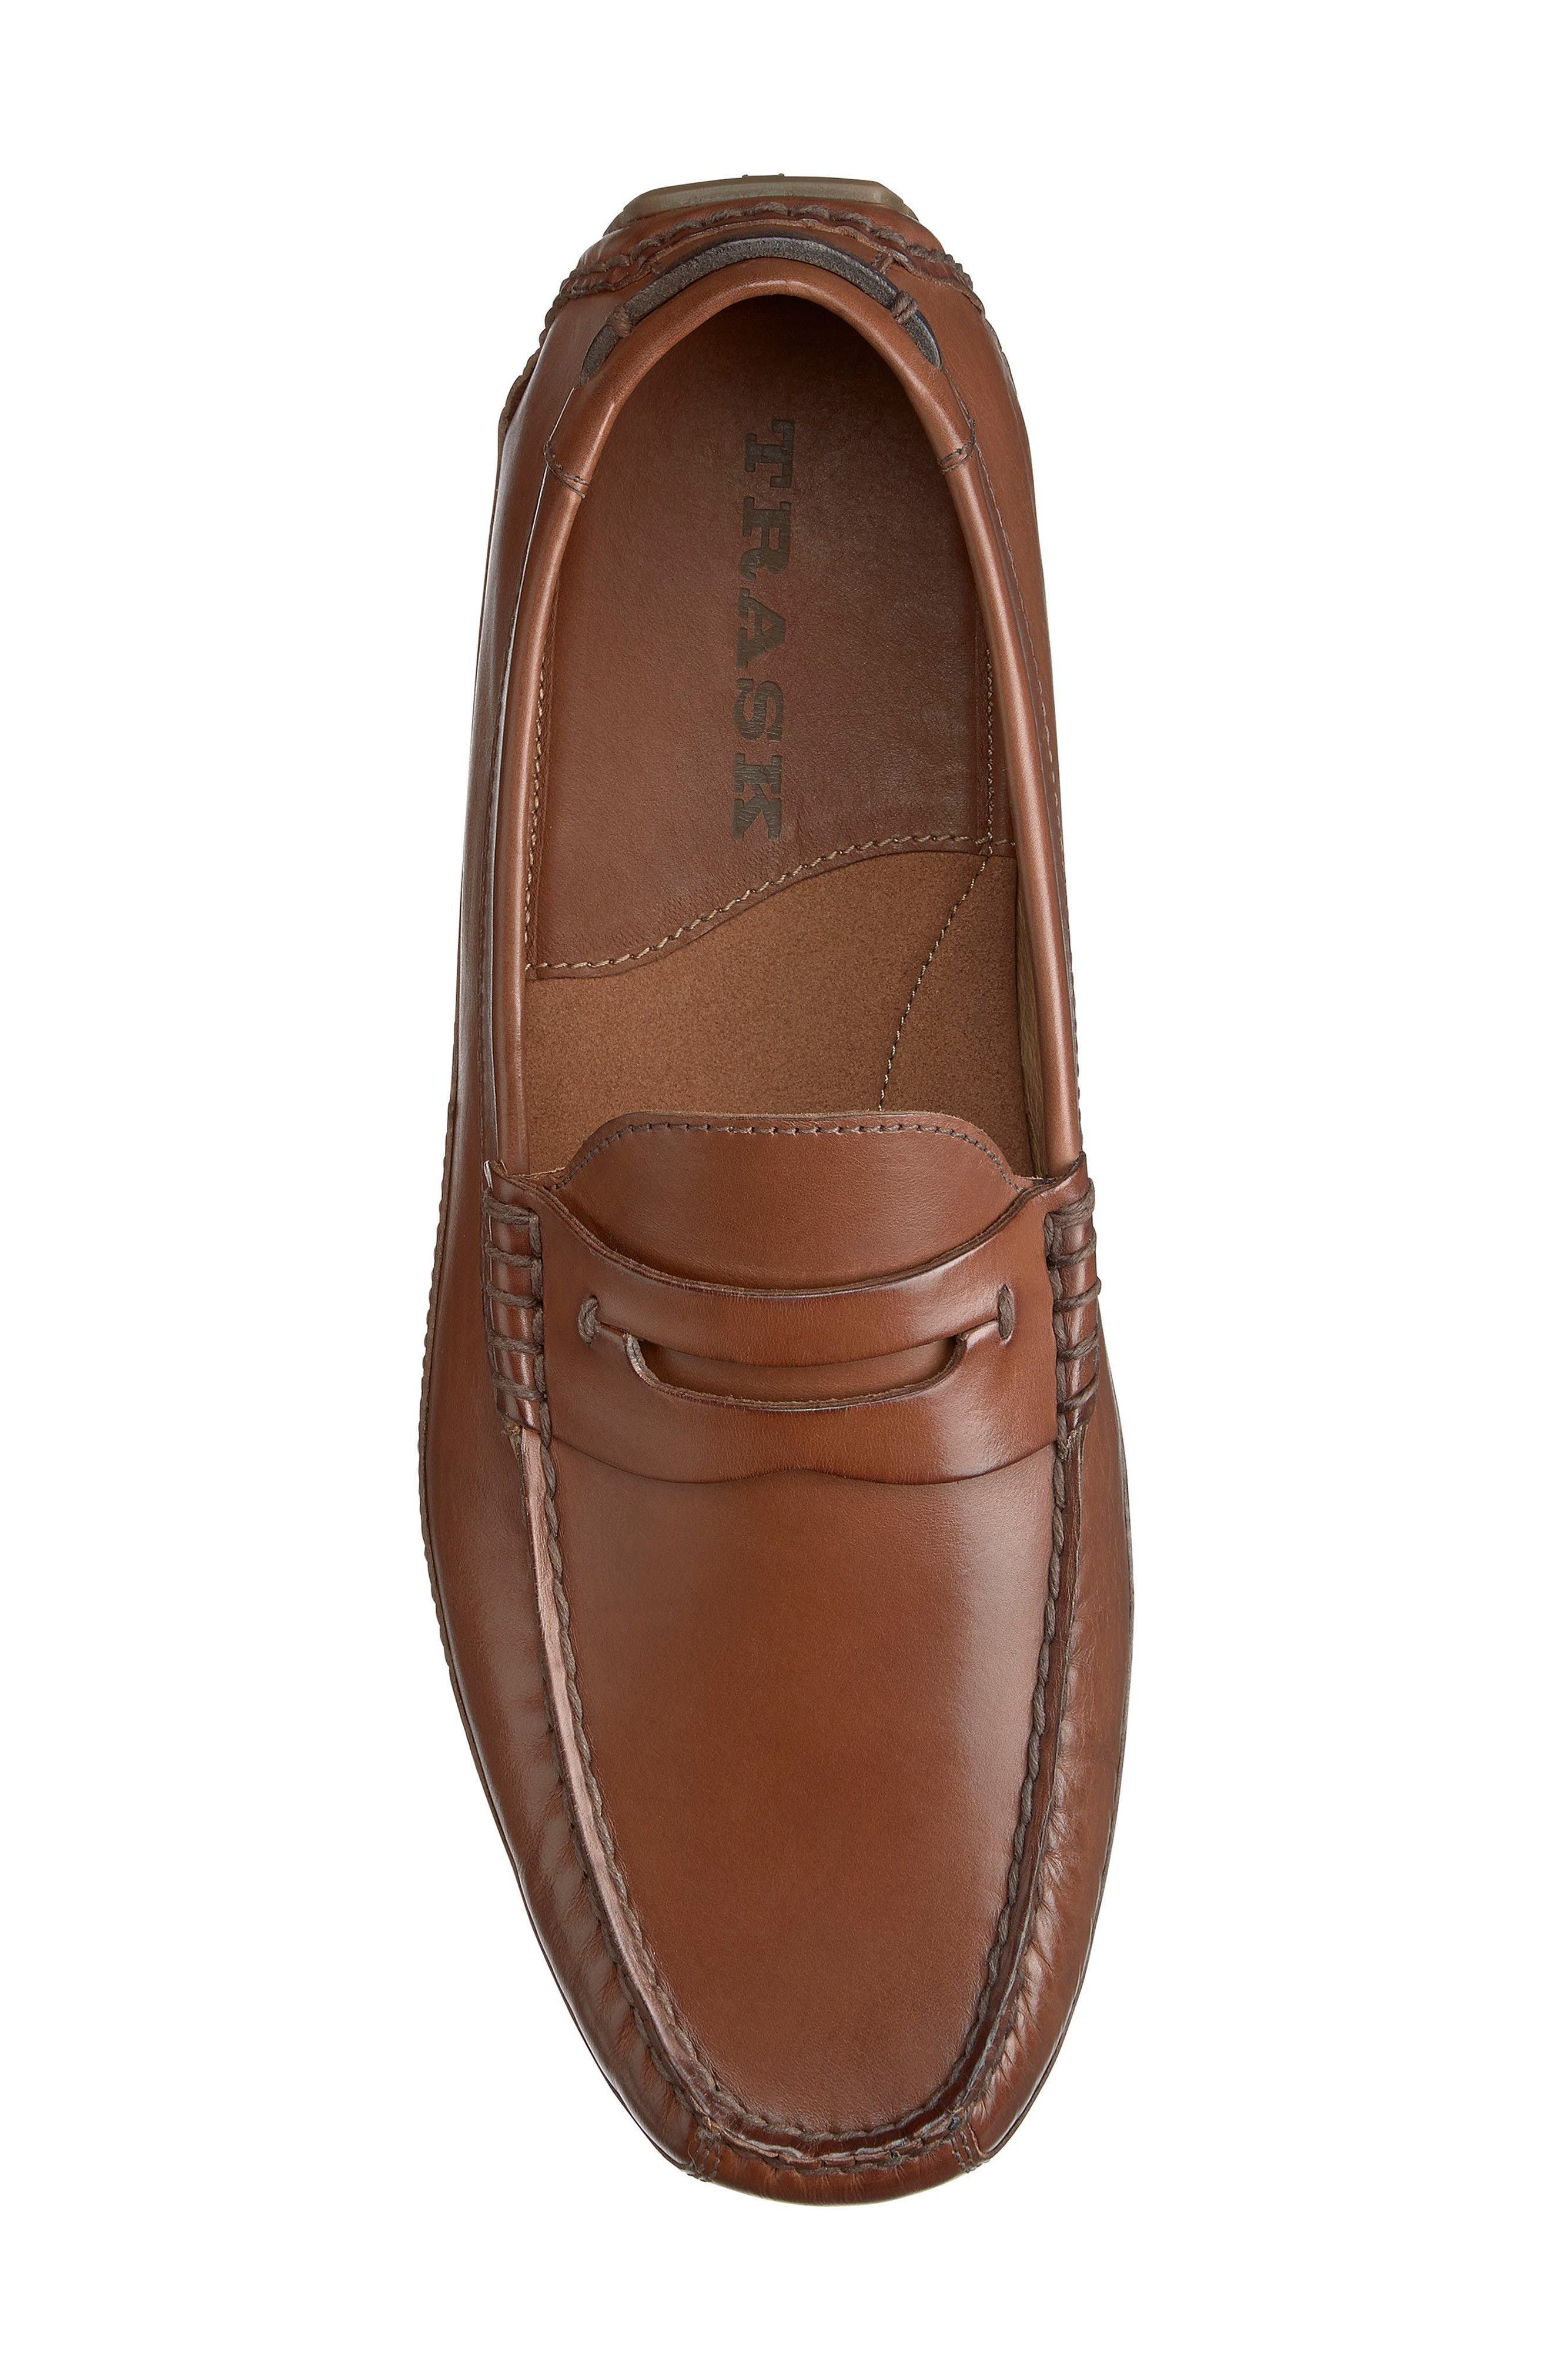 Dawson Water Resistant Driving Loafer,                             Alternate thumbnail 5, color,                             Light Brown Leather